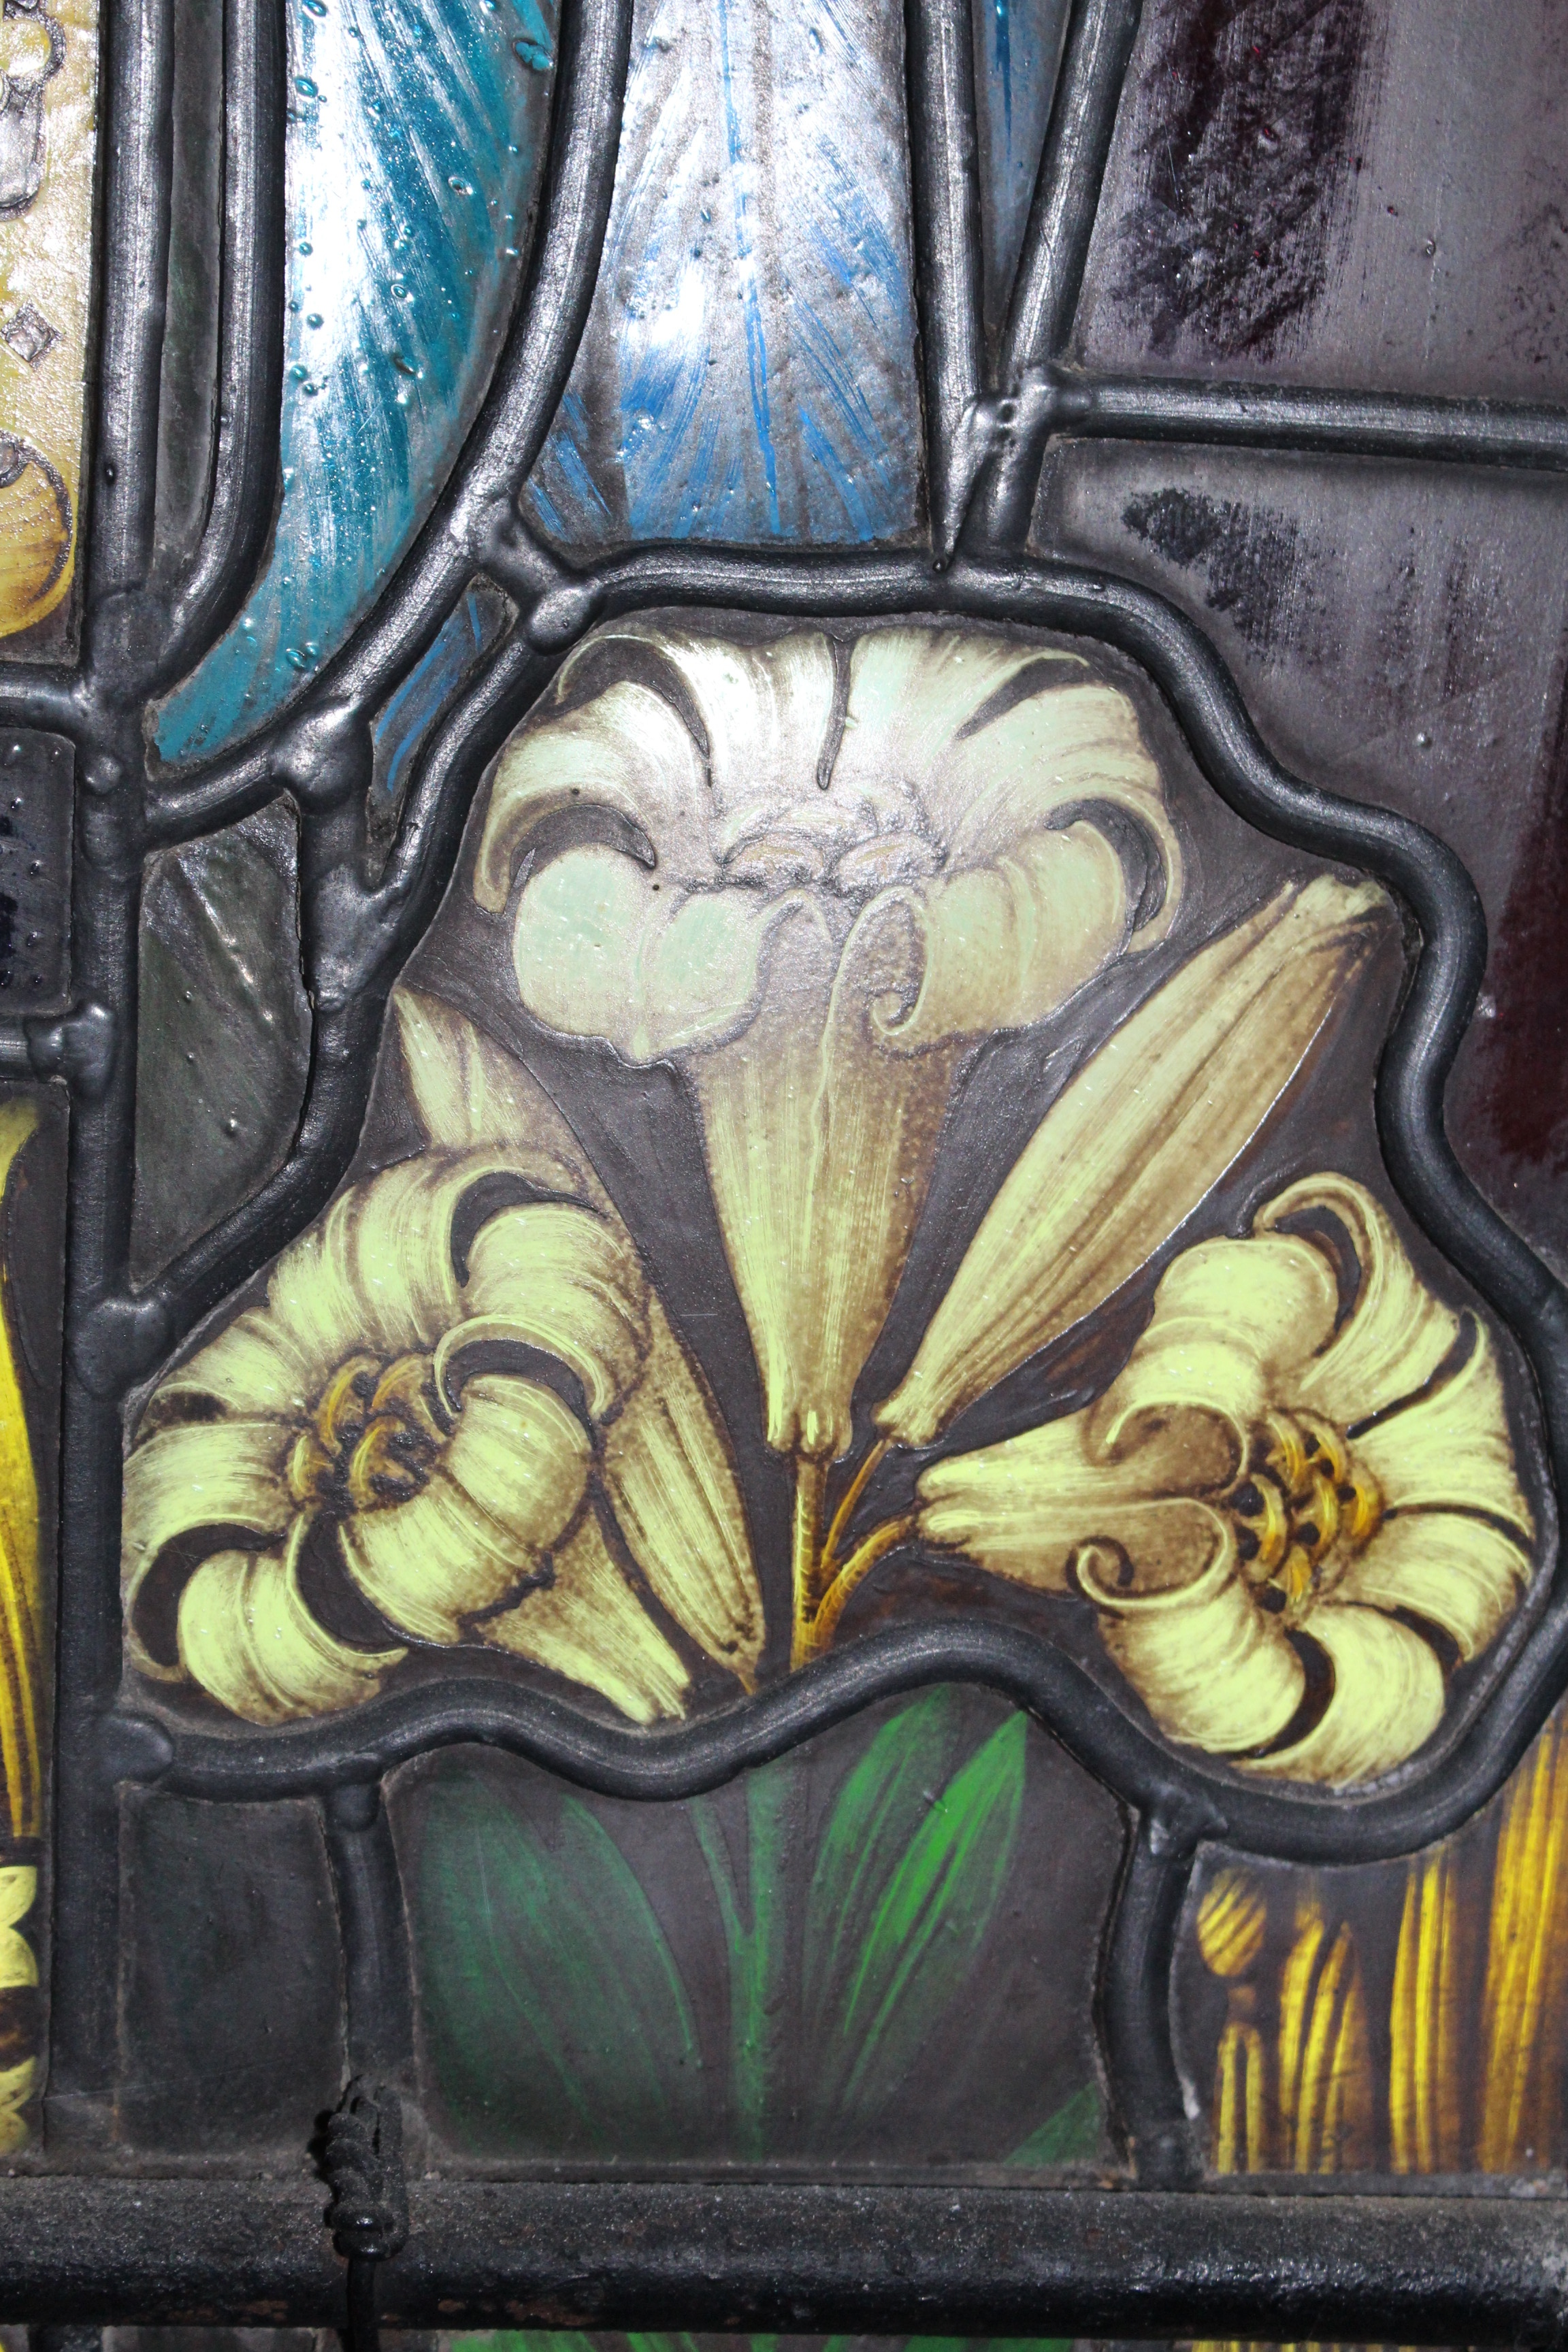 Detail of lilies at the feet of the Archangel Gabriel